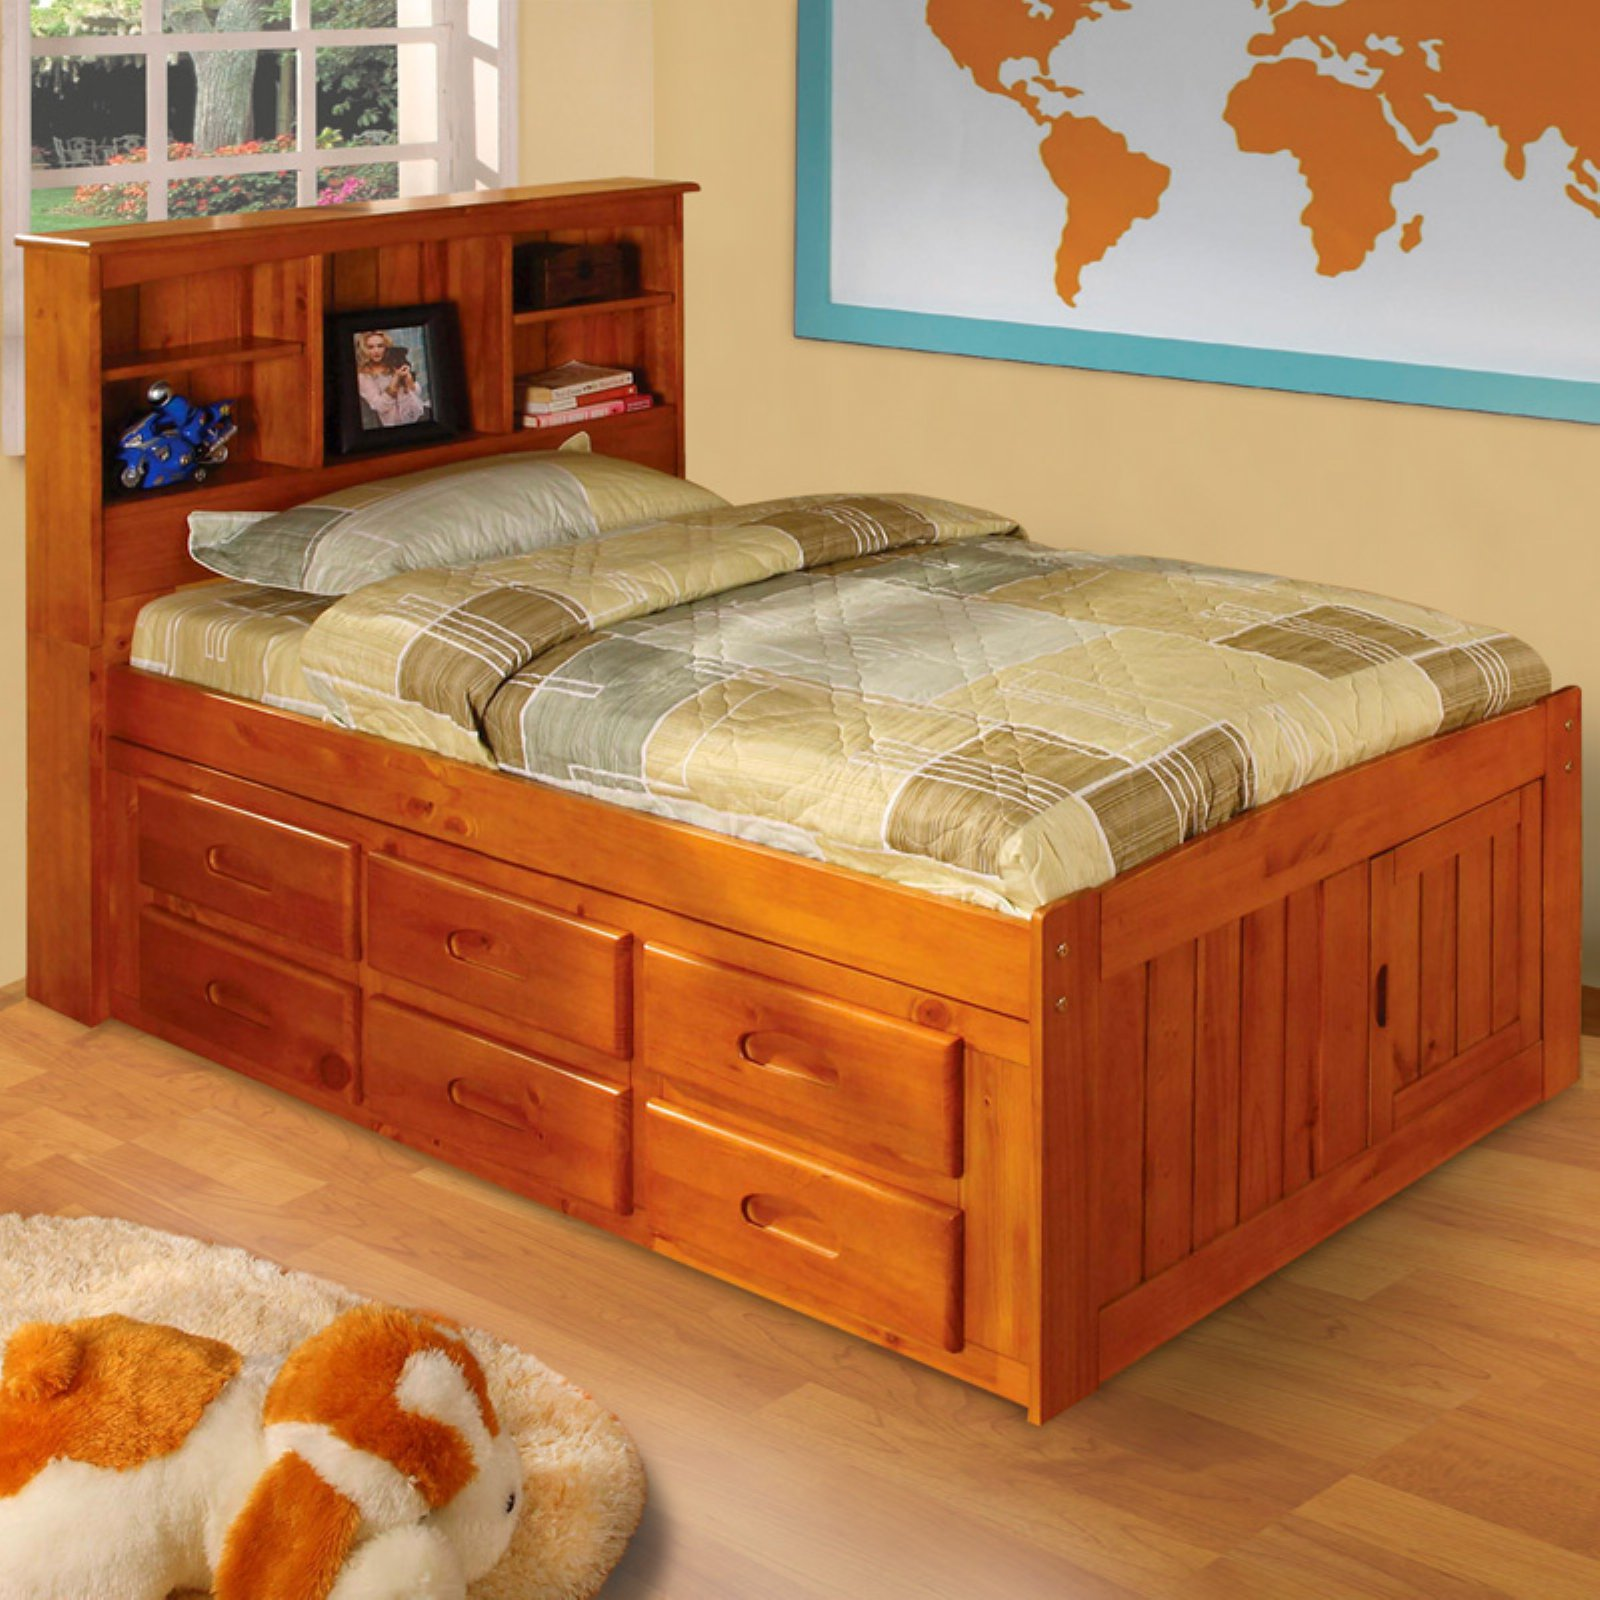 American Furniture Clics Bookcase Headboard With Six Drawers